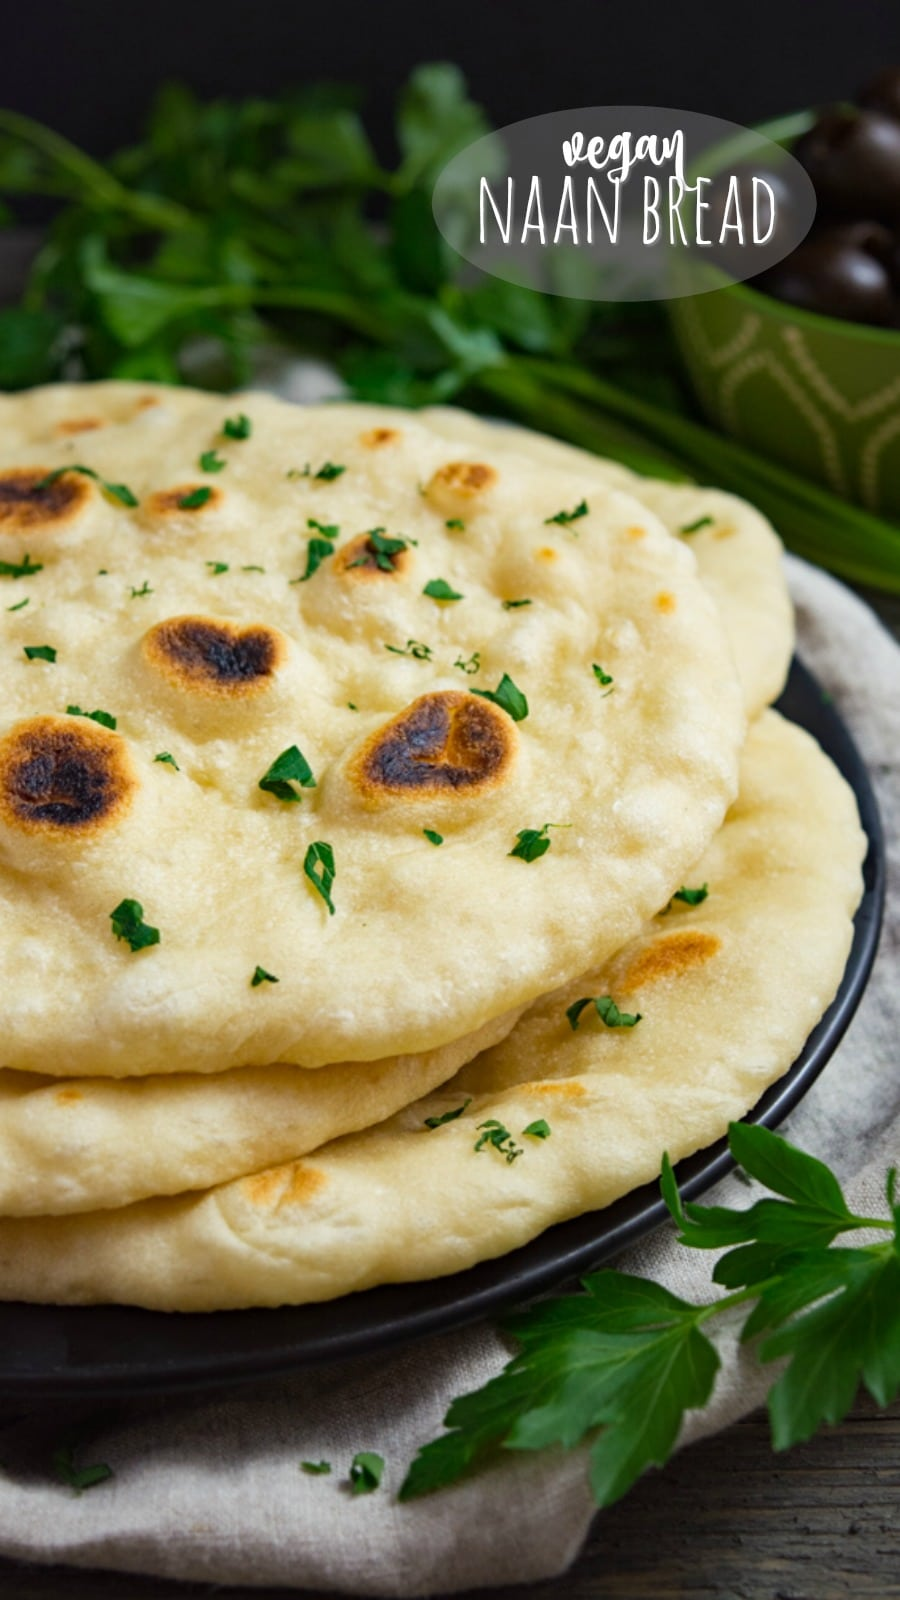 Homemade vegan naan bread is better than any store bought flatbread!  This soft pliable bread is irresistible with dips, curries, soups and more! The dough easily freezes so fresh vegan naan can be enjoyed anytime! #vegannaan #naanbreads #naanrecipes #vegan #veganrecipes #veganflatbread